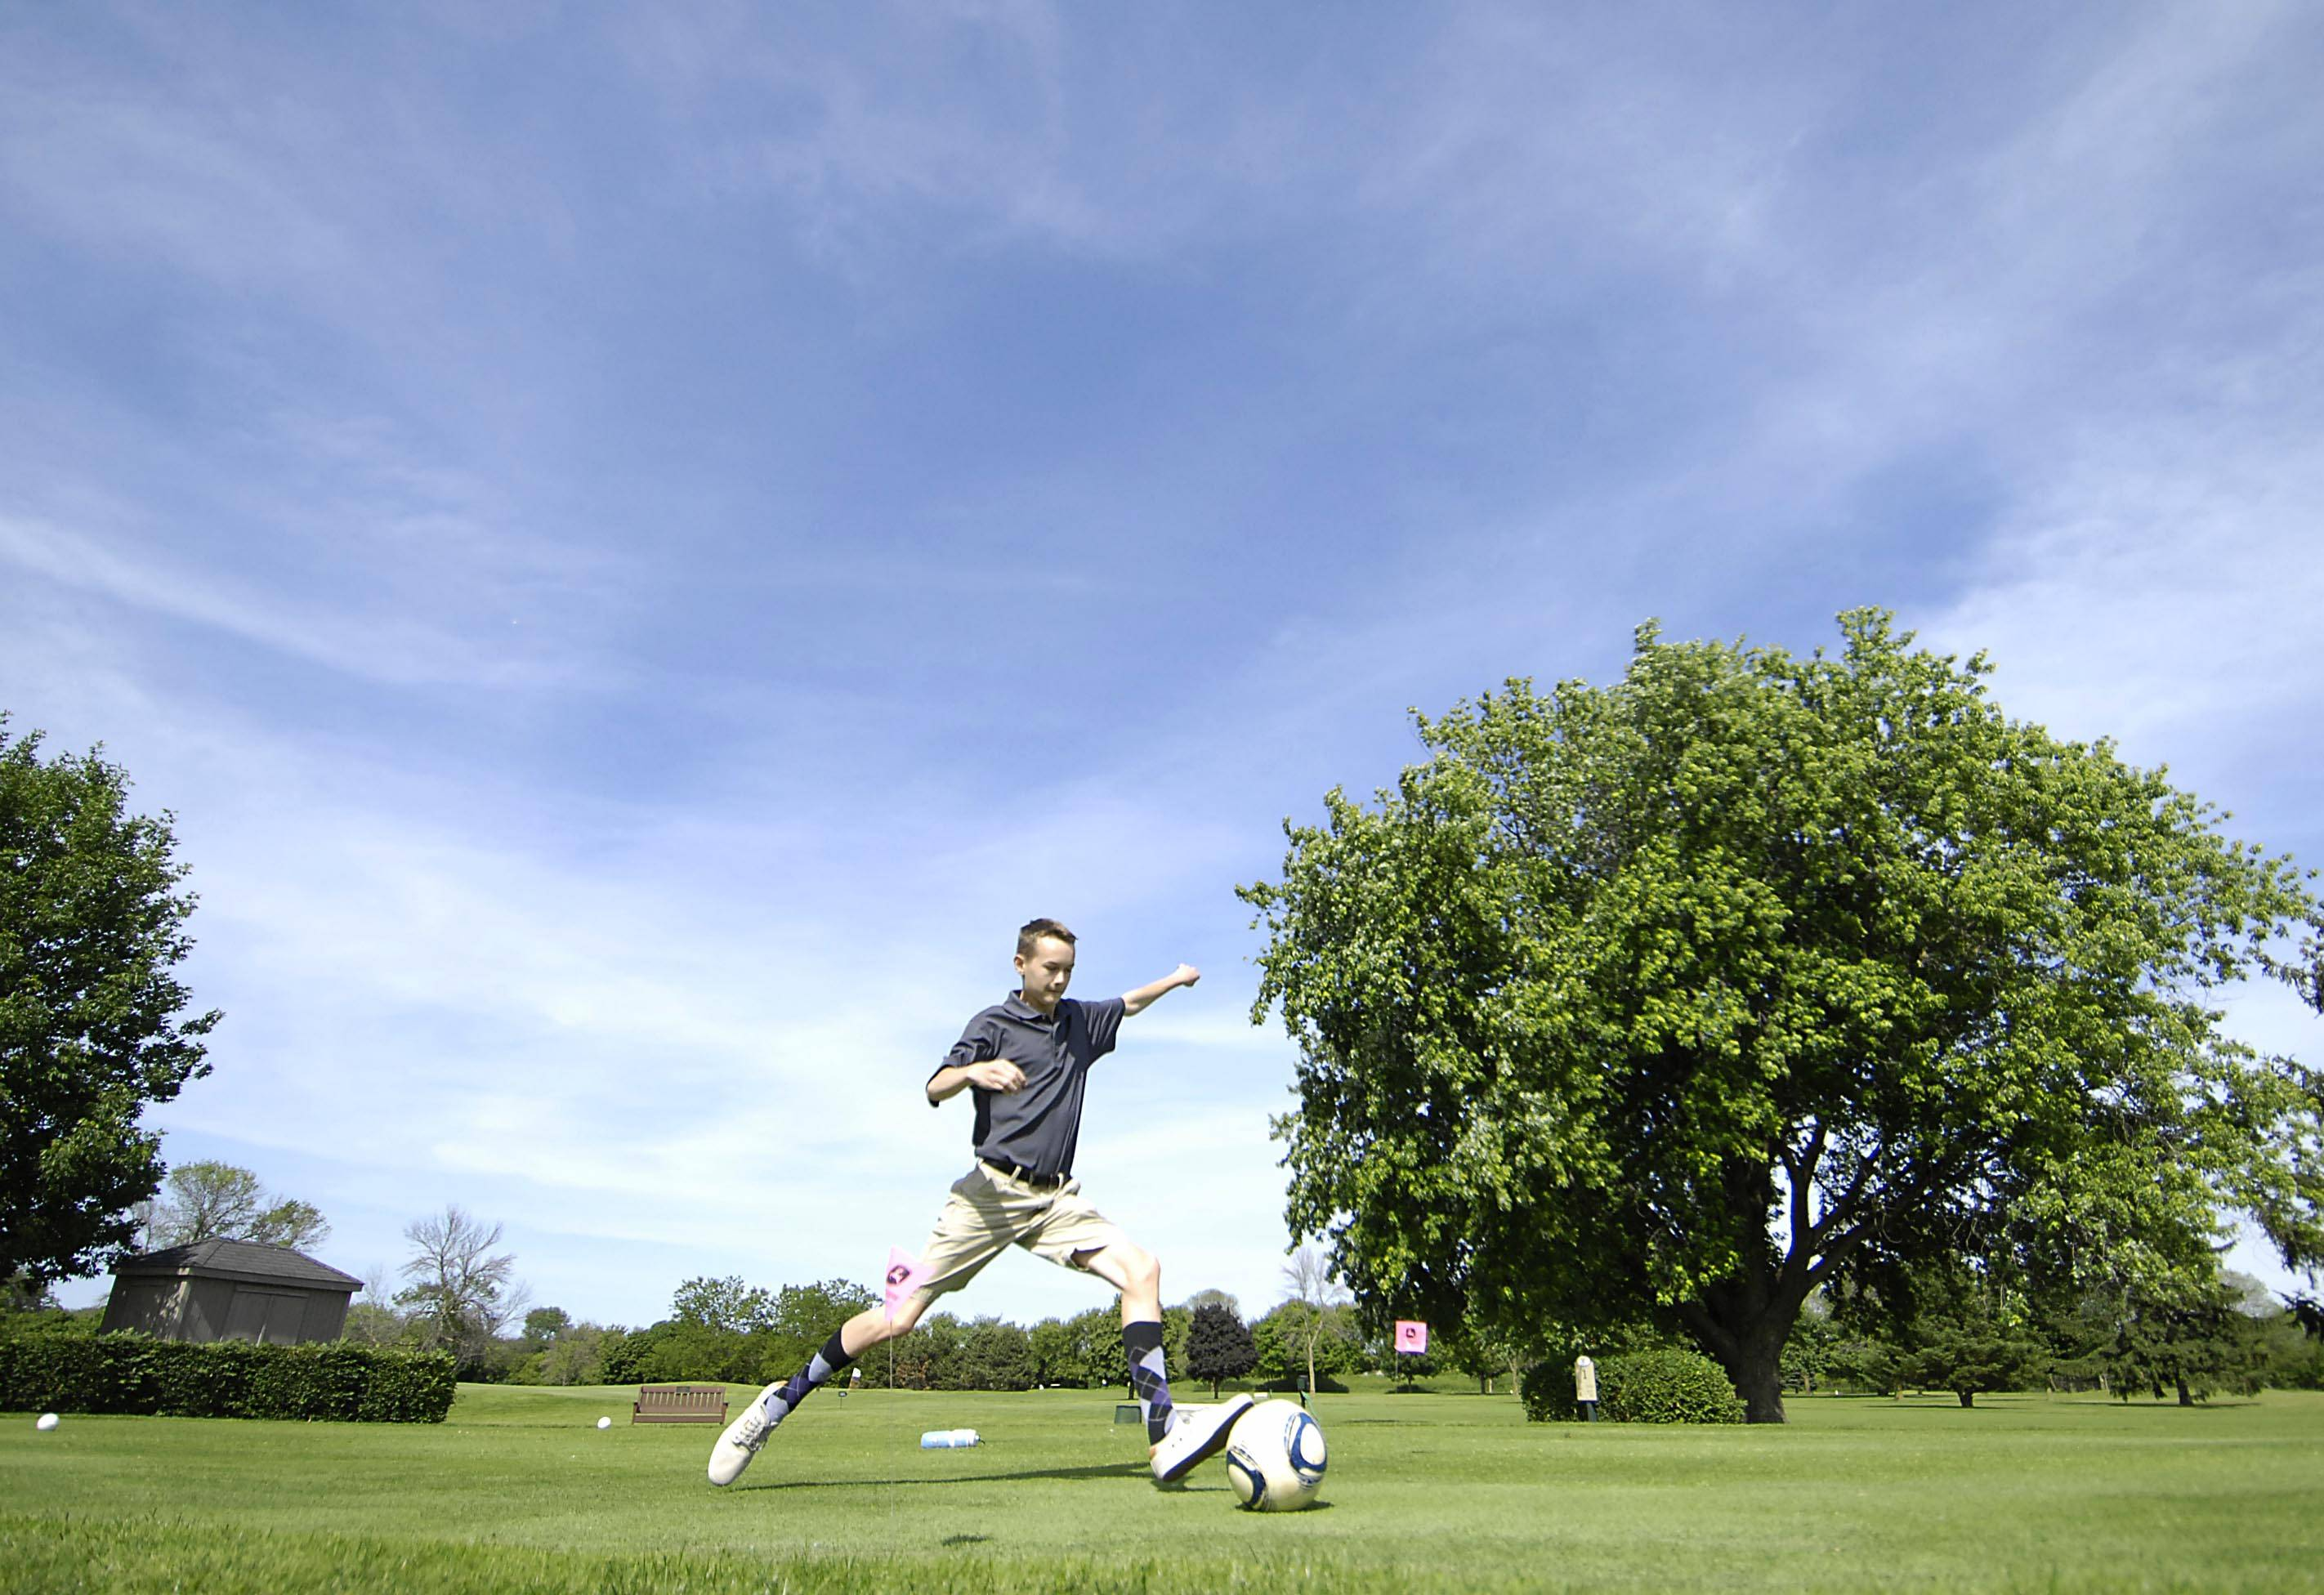 Garrett Otto tees off at Bonnie Dundee Golf Club in Carpentersville as he plays FootGolf with Alex Lenski. Both are 16 and live in Geneva. The sport combines golf with soccer, and is played on a golf course.